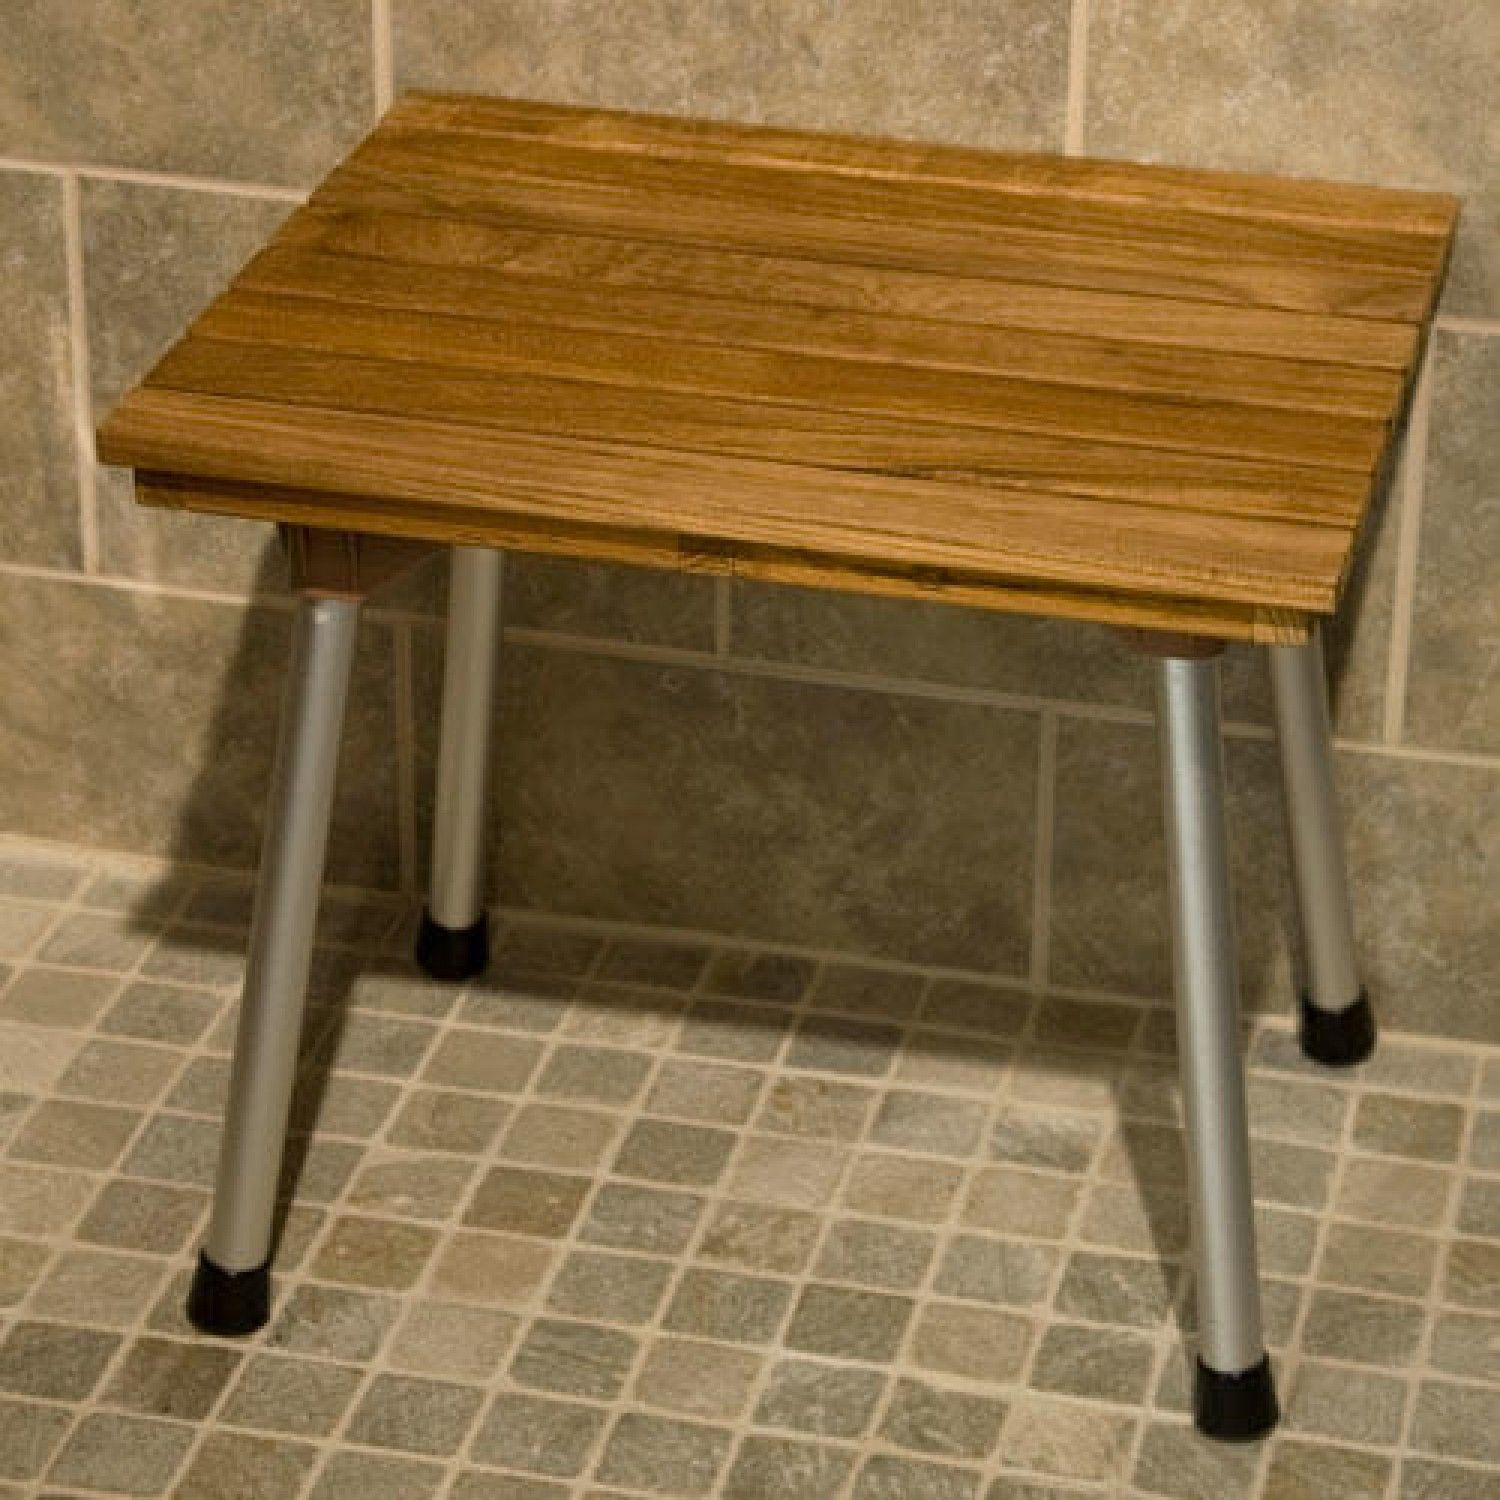 Teak Folding Shower Bench | Shower benches, Teak and Bench